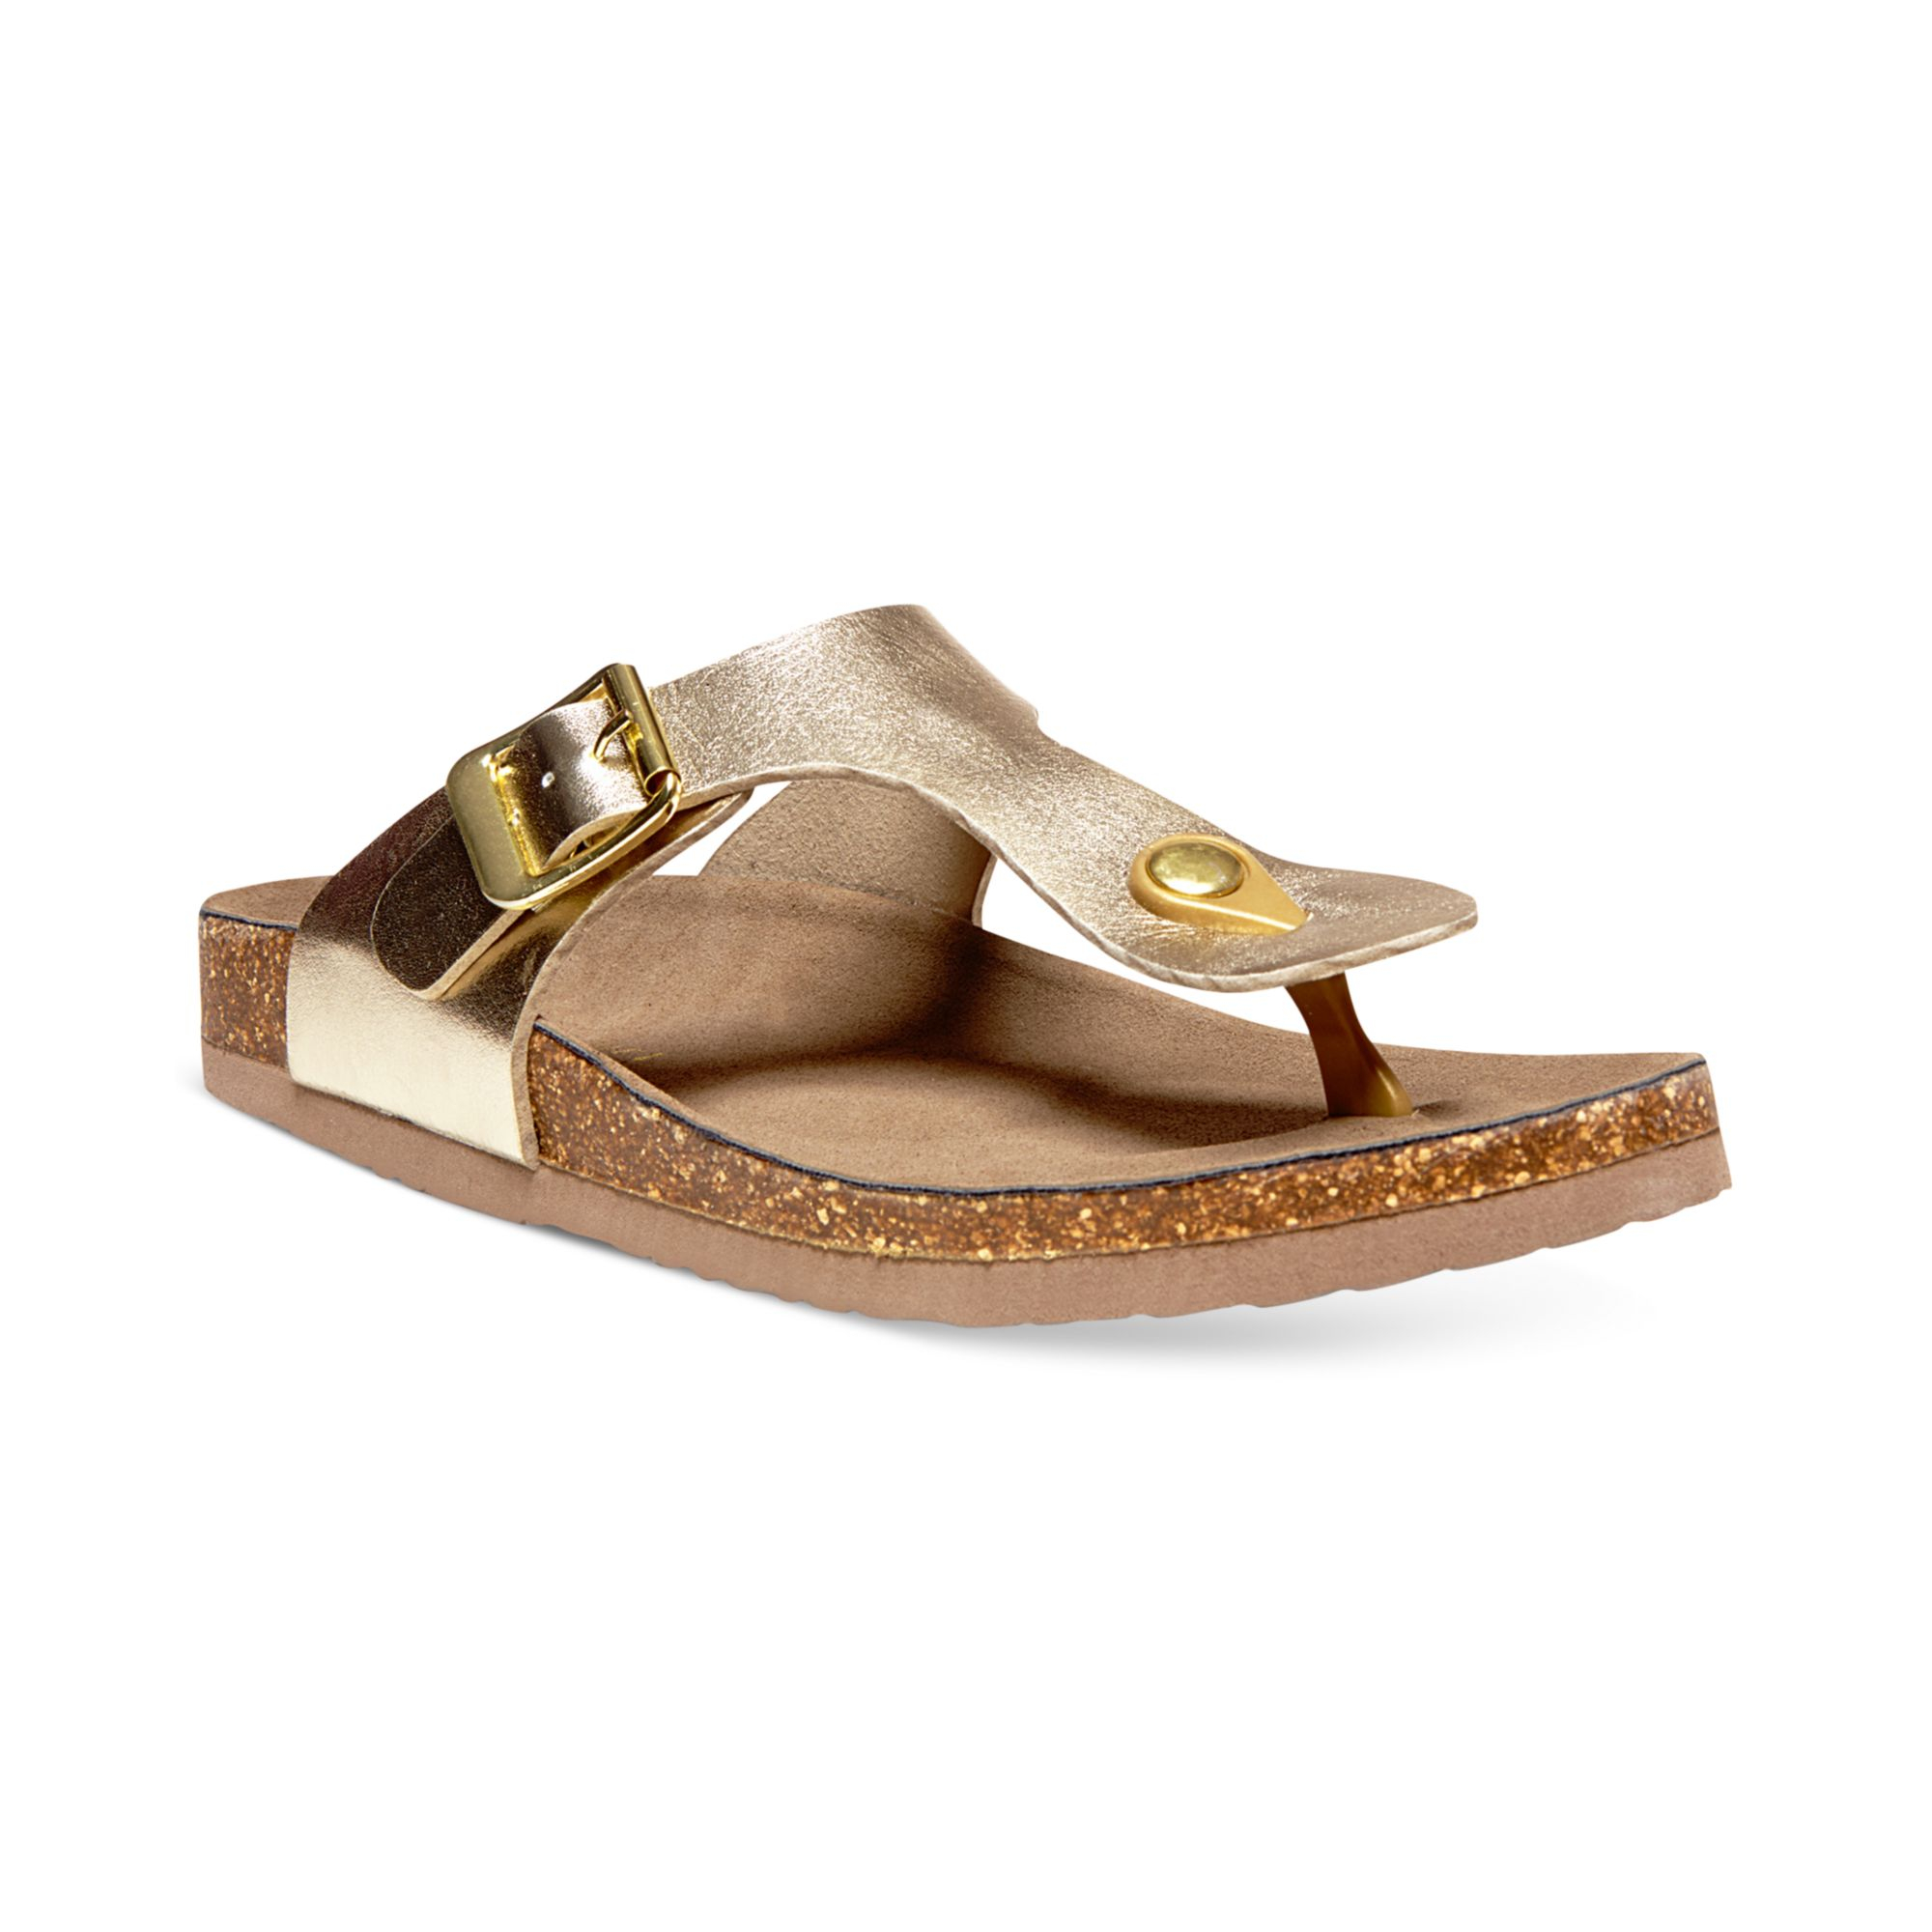 Madden Girl Boise Footbed Thong Sandals In Gold Lyst